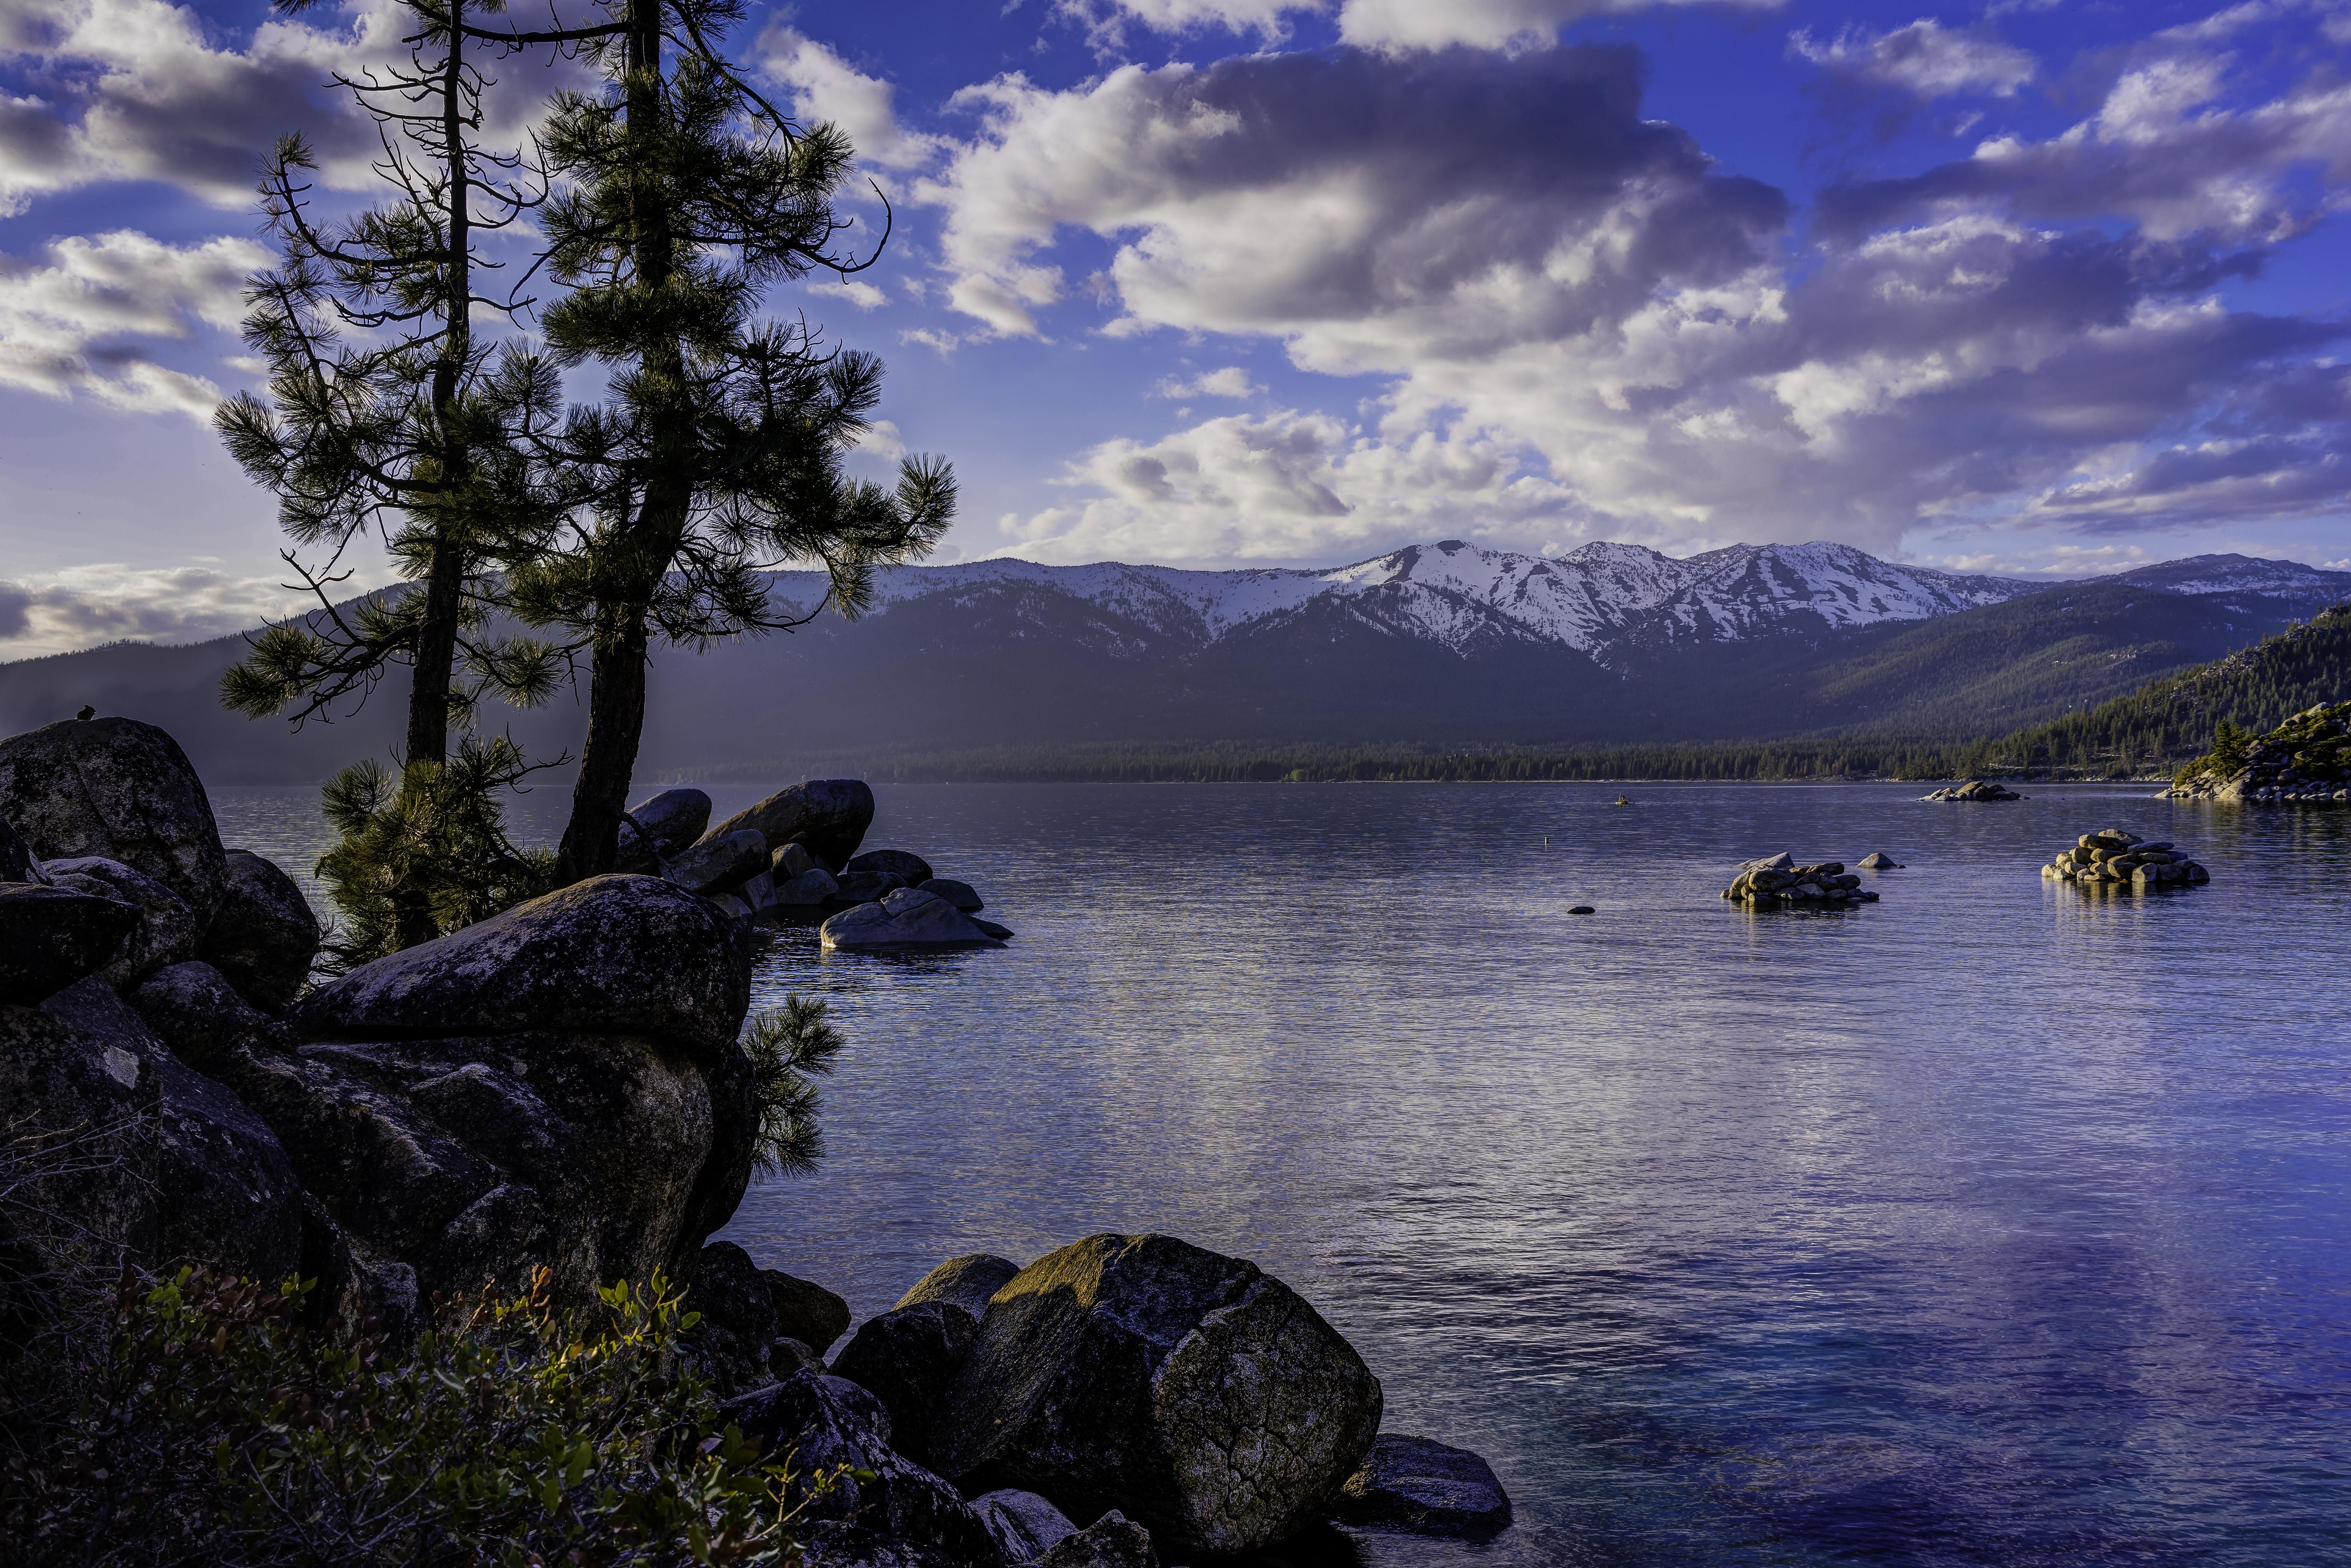 Northern Lake Tahoe From Sand Harbor 5993x3997 Oc Landscape Nature Photos Nature Earth Photos Lake Tahoe